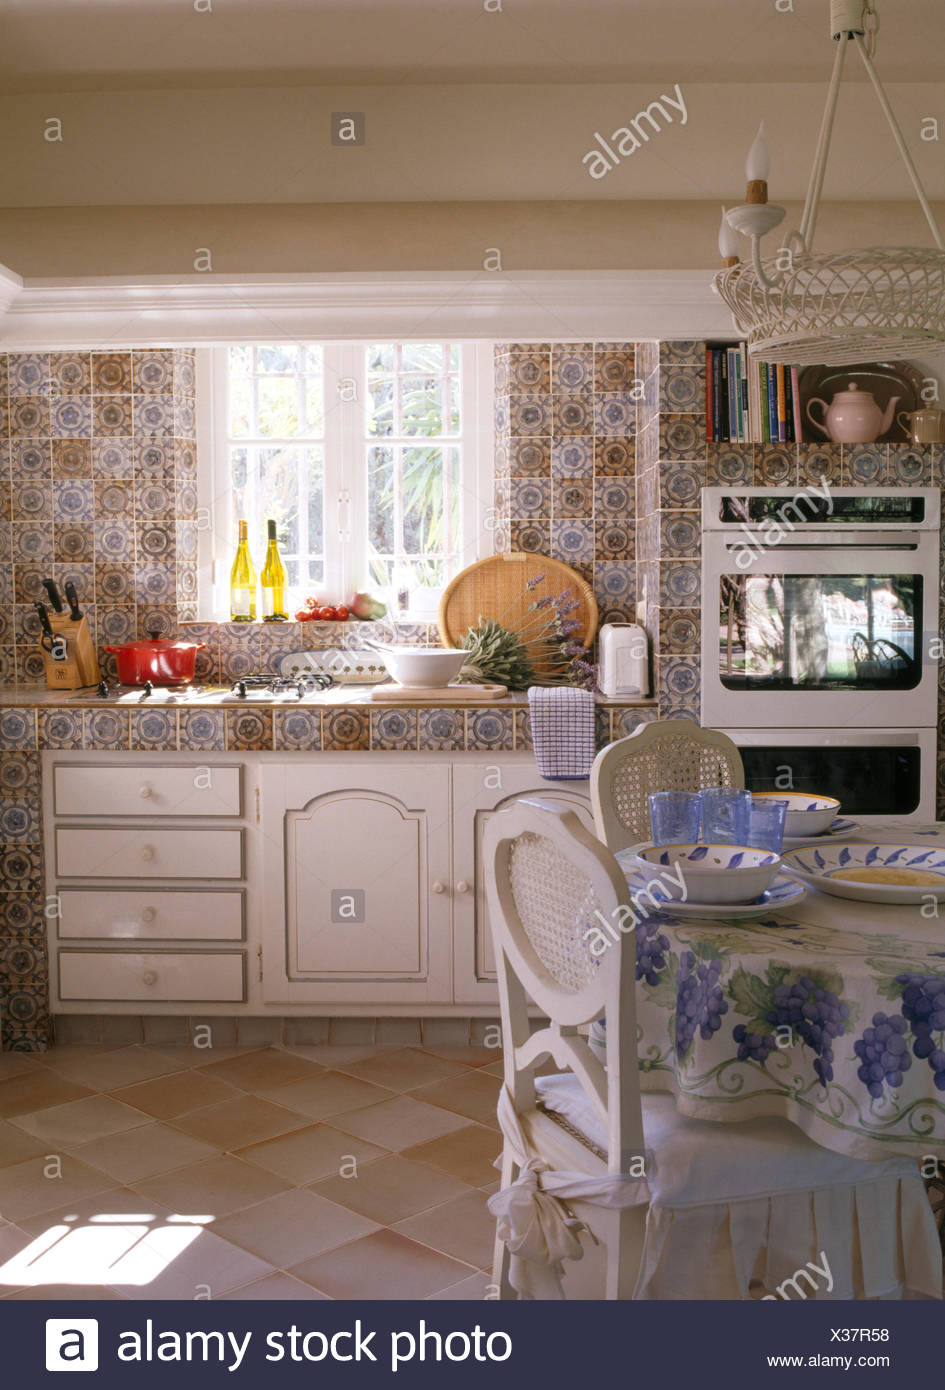 Super Patterned Wall Tiles And Worktop In French Country Kitchen Unemploymentrelief Wooden Chair Designs For Living Room Unemploymentrelieforg